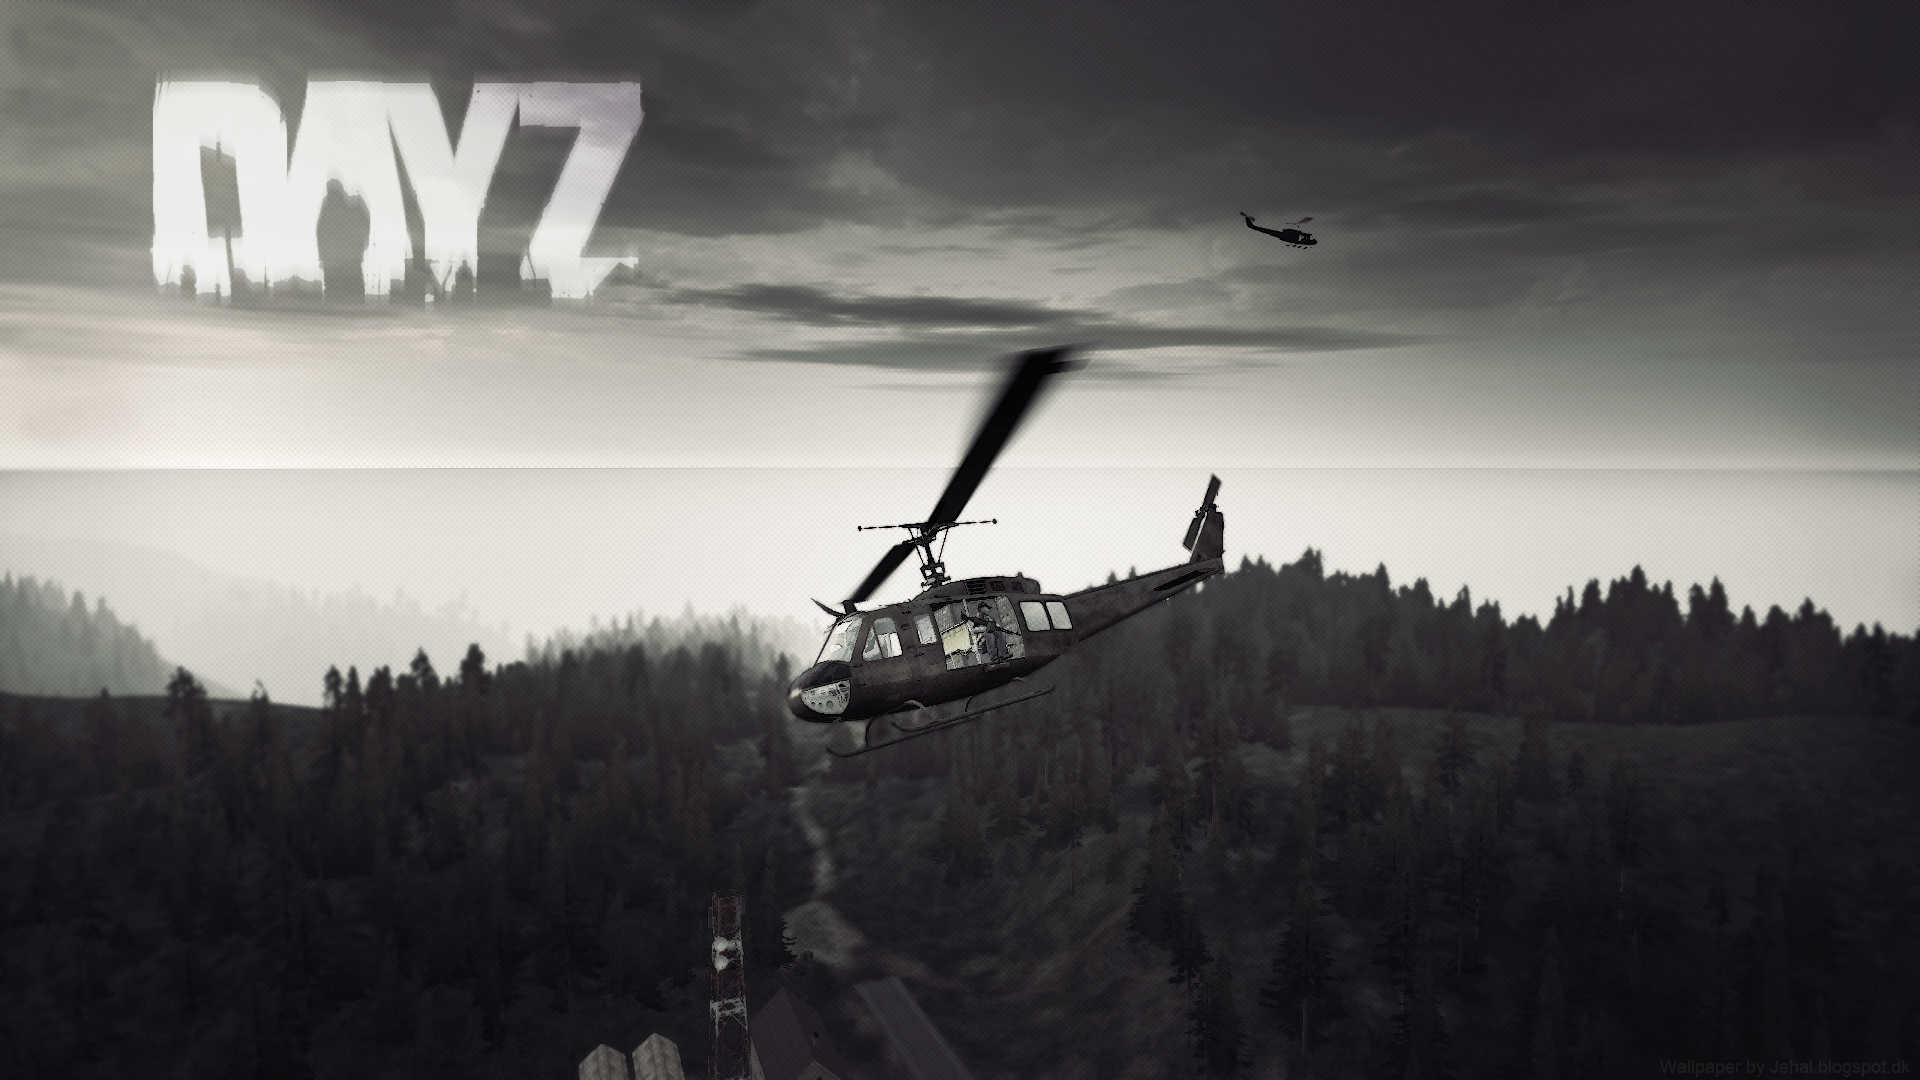 DayZ HD Wallpapers Free Download - Unique HDQ Cover Images